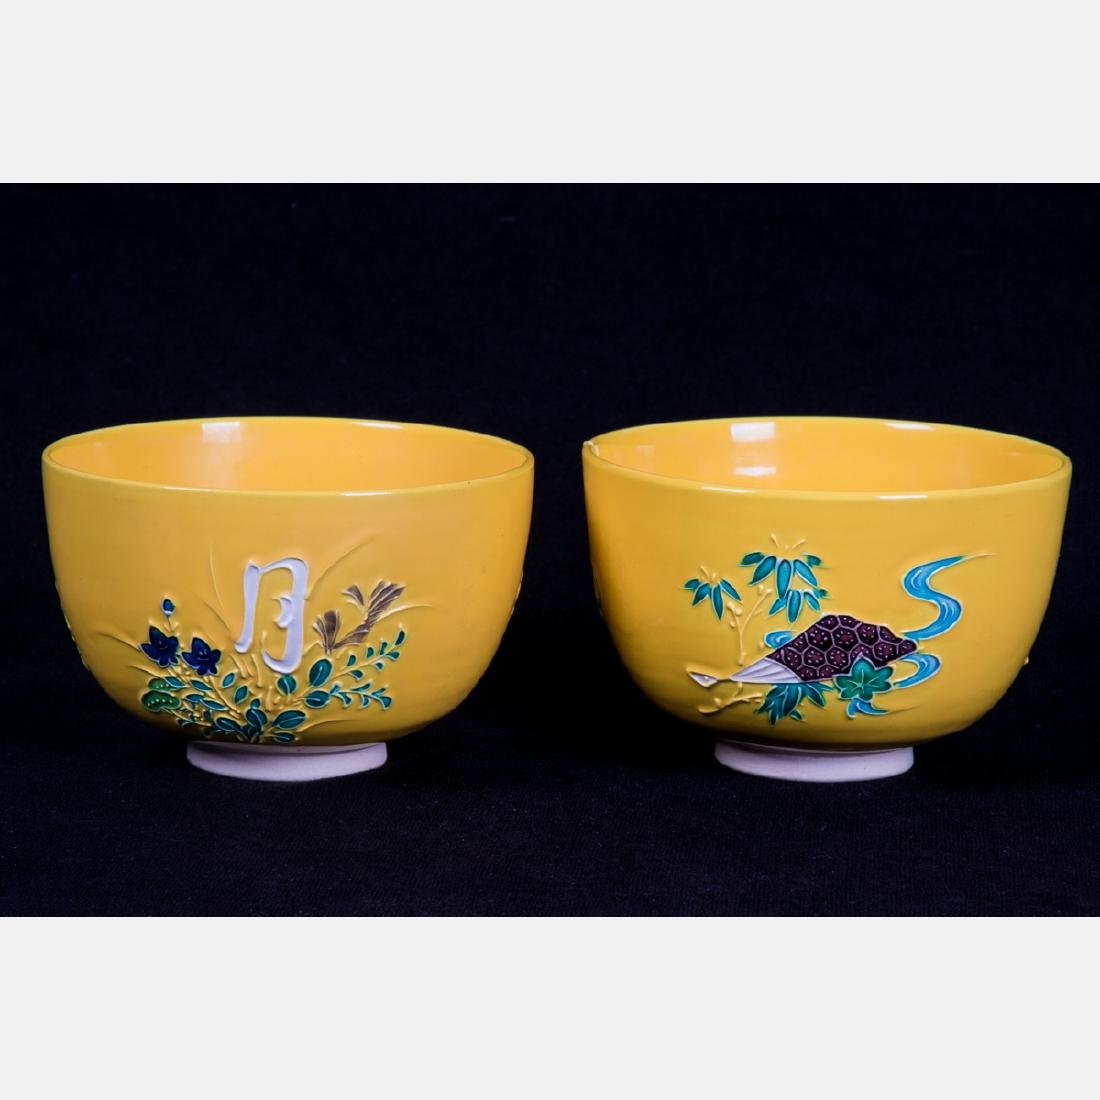 A Pair of Japanese Kyoto Ware Porcelain Bowls, 20th - 2